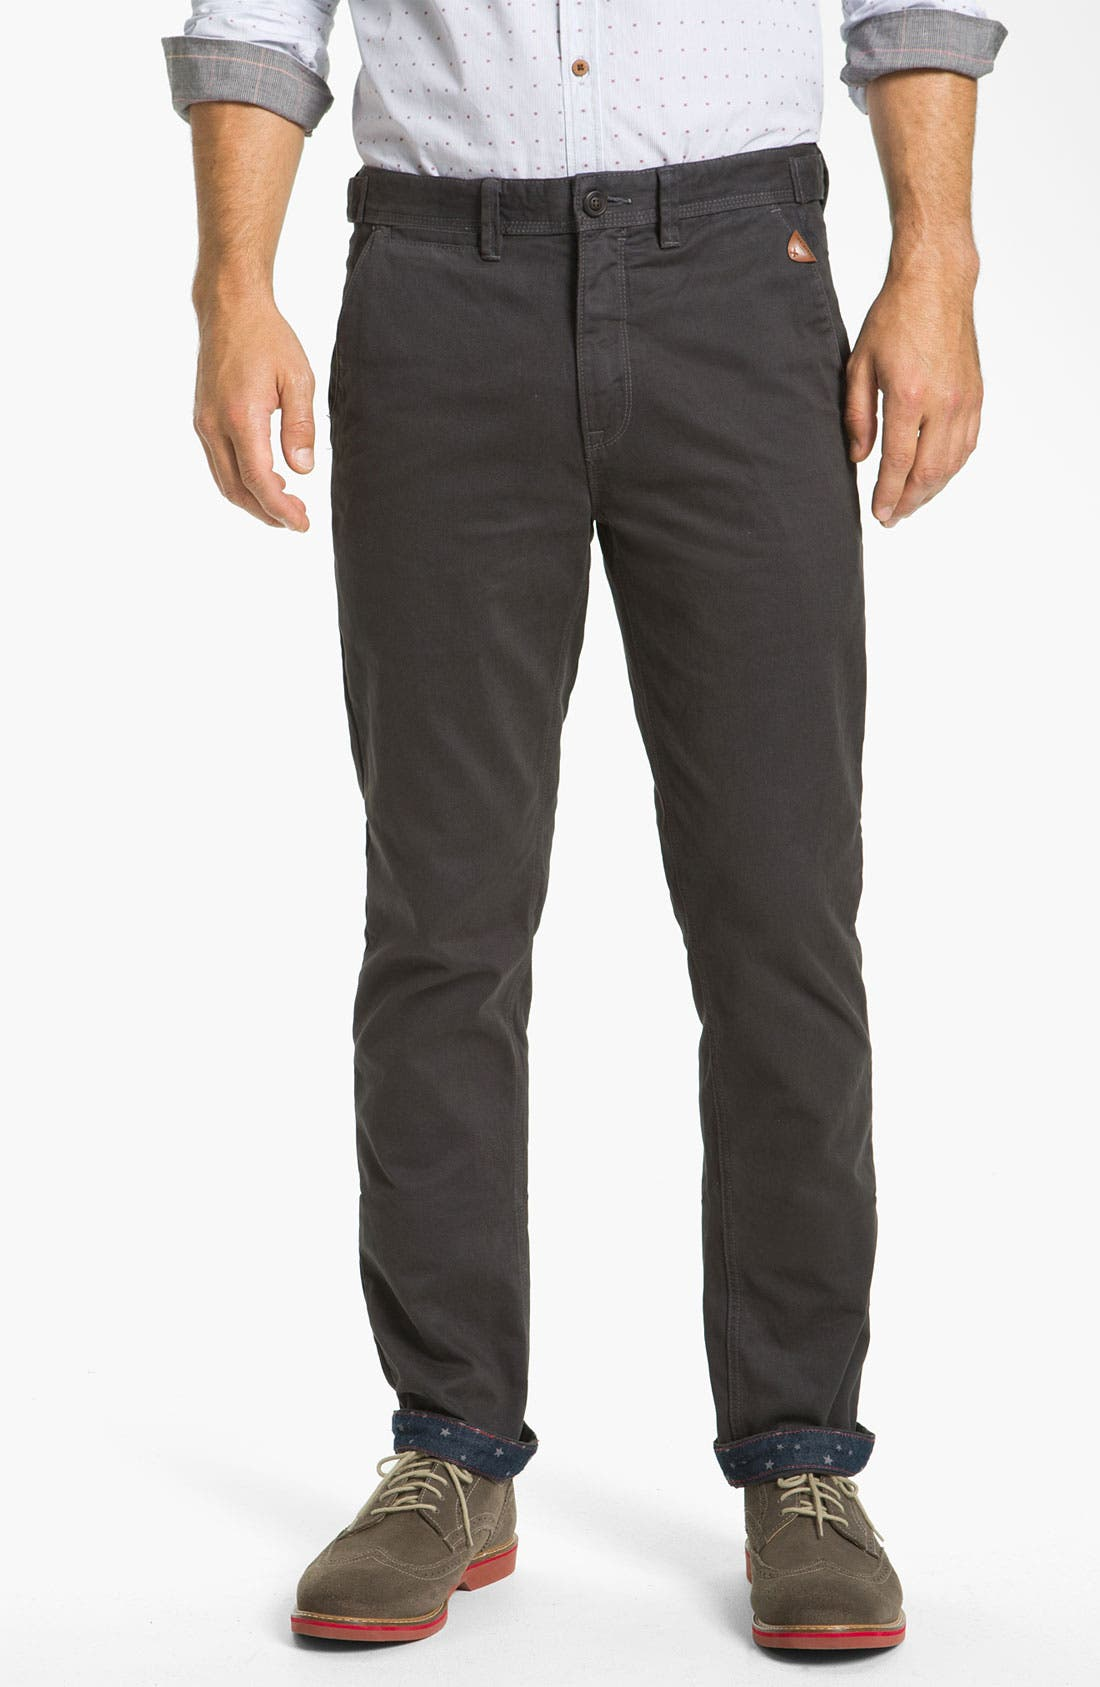 Alternate Image 1 Selected - Ted Baker London 'Lucchin' Slim Fit Chinos